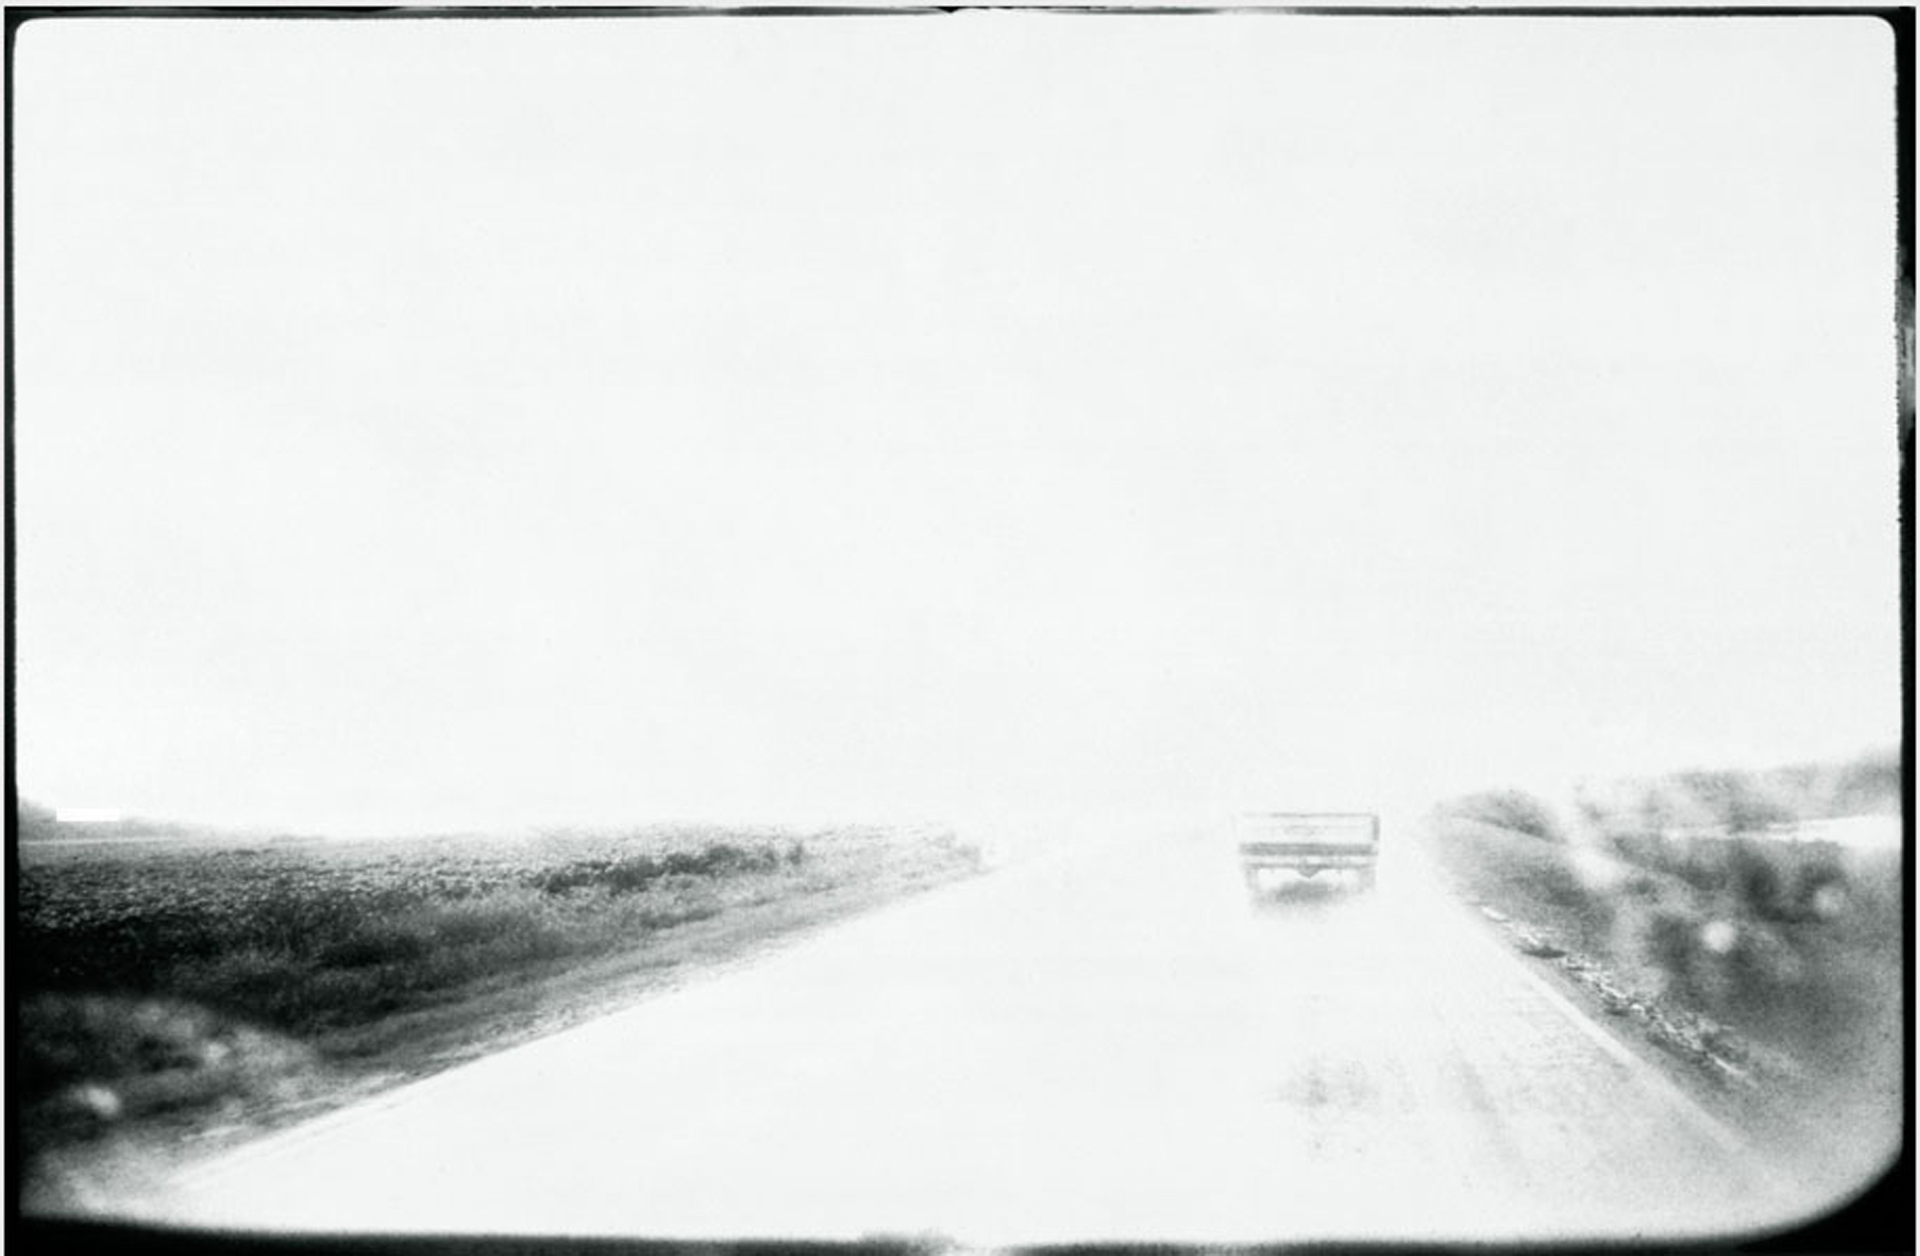 ROAD TRIP TRUCK © Chris Bartlett. Black and white framed print - the road ahead, viewed through windscreen